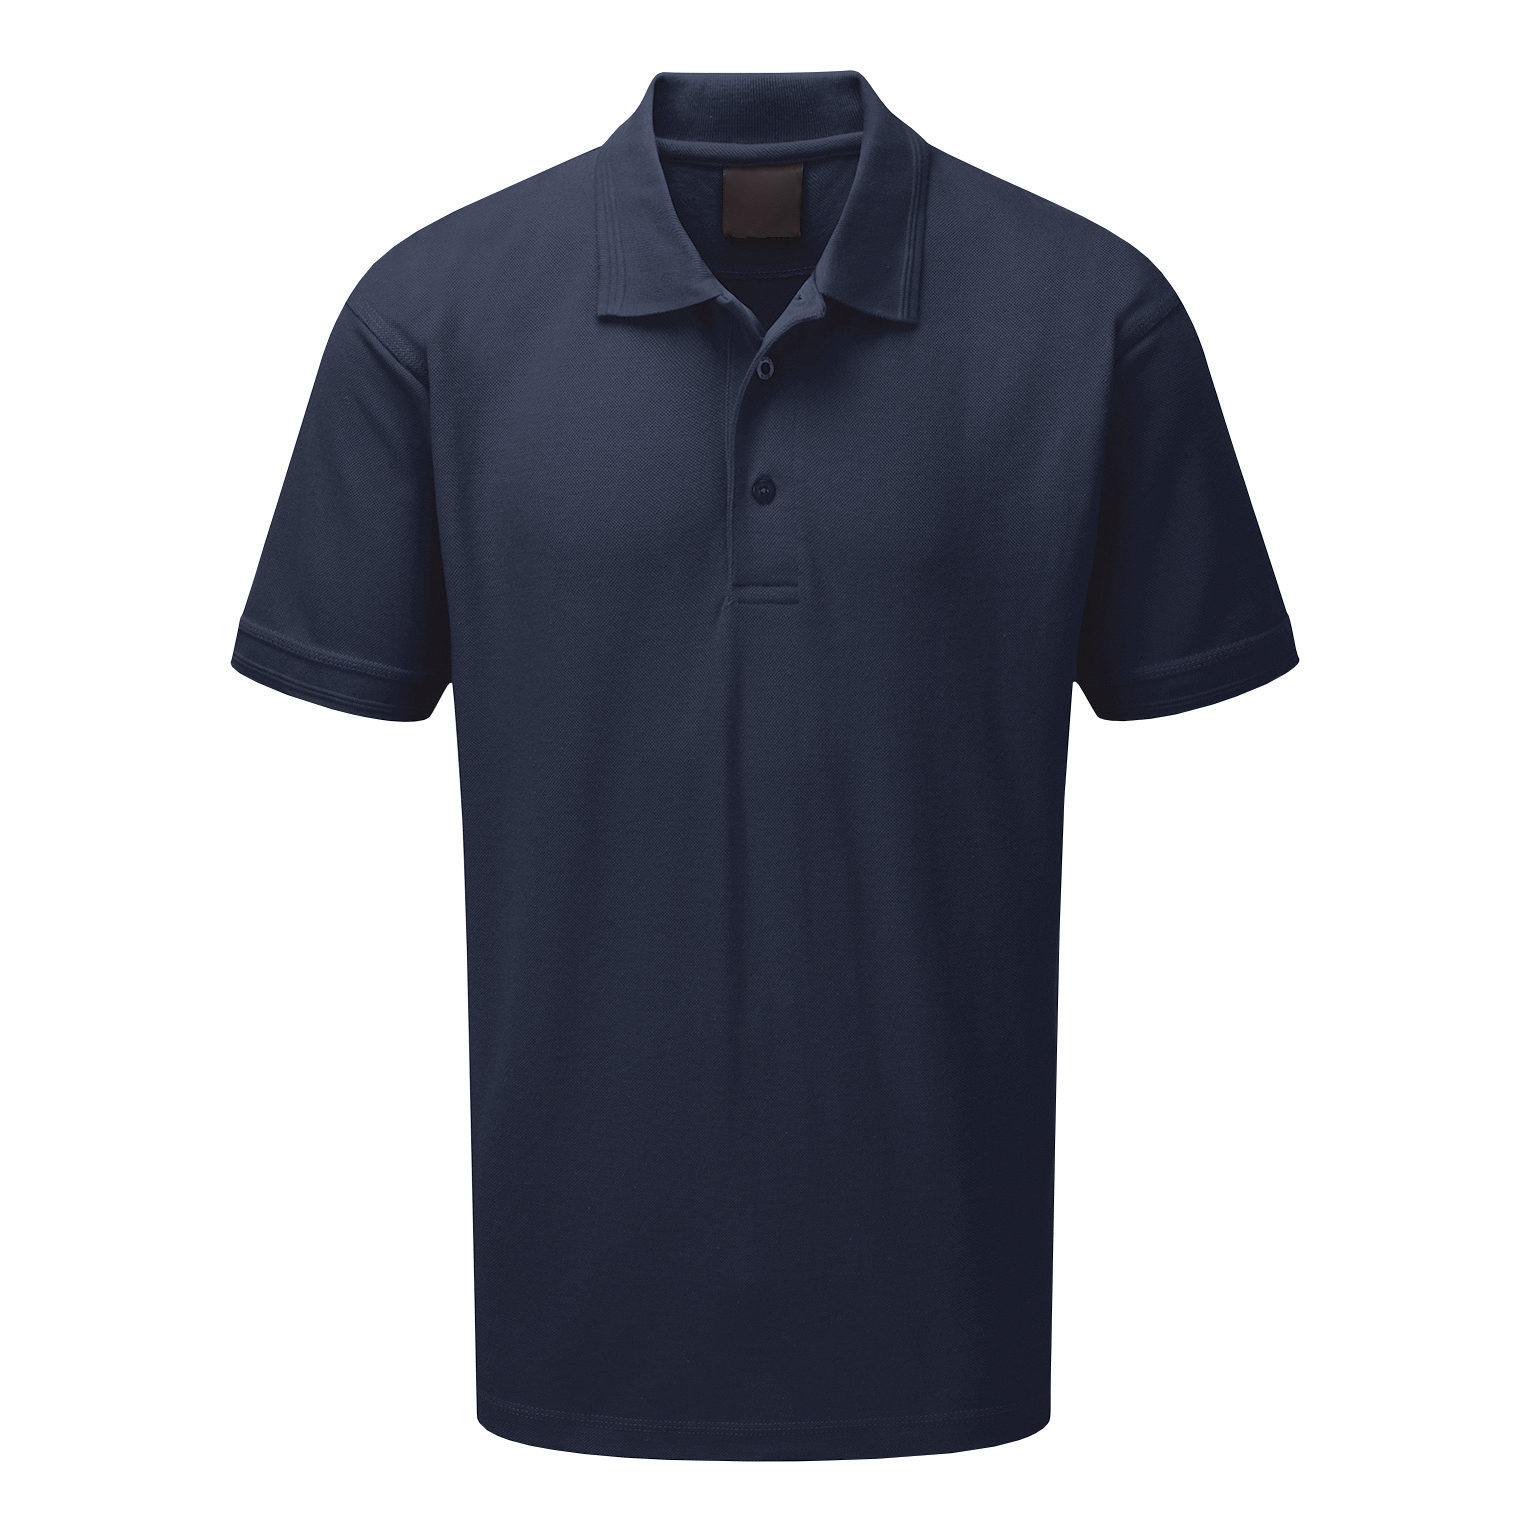 Click Workwear Polo Shirt Polycotton 200gsm Small Navy Blue Ref CLPKSNS *1-3 Days Lead Time*